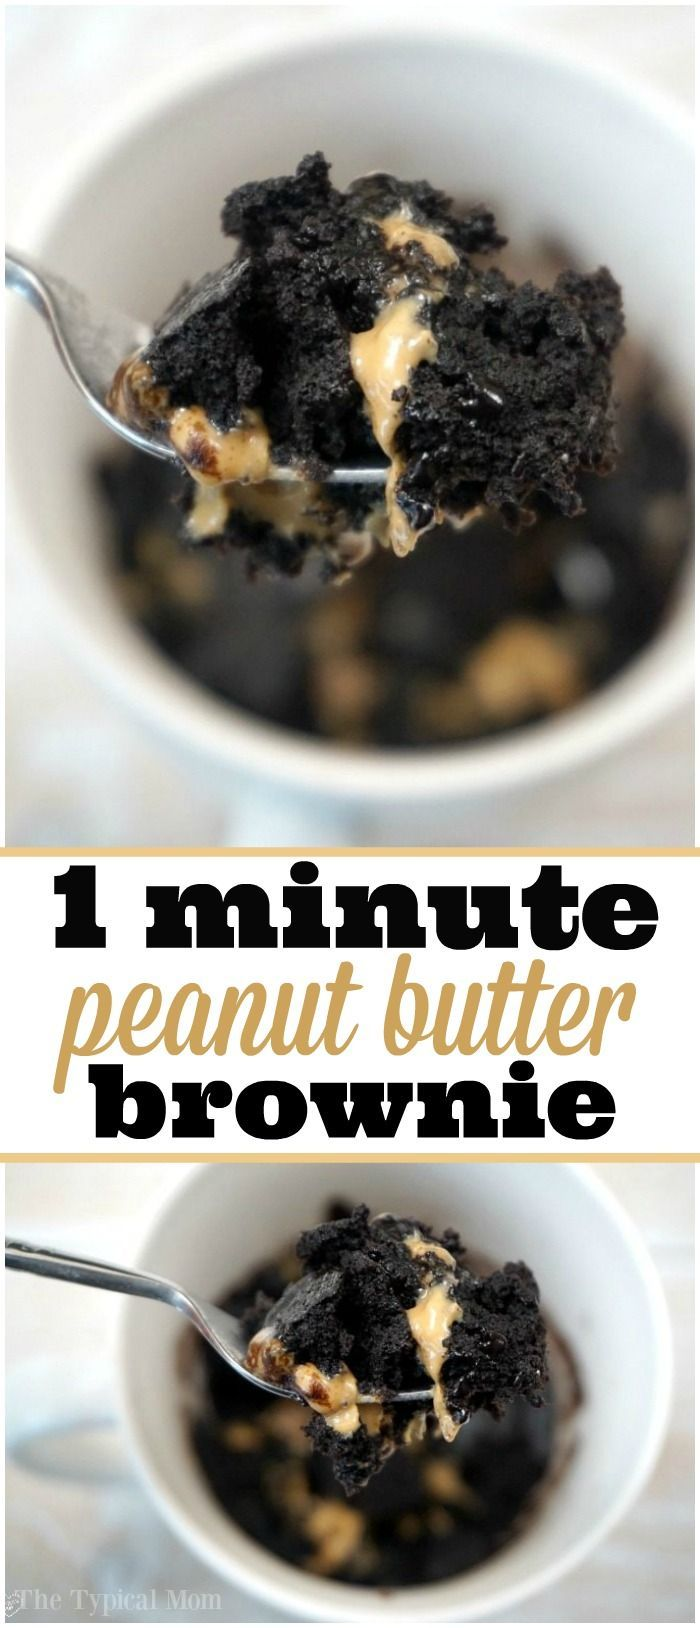 Peanut butter brownie in a mug recipe, it's amazing!! Throw it all together, stick in the microwave for 1 min. and it's done! via @thetypicalmom (Peanut Butter Chocolate Desserts)